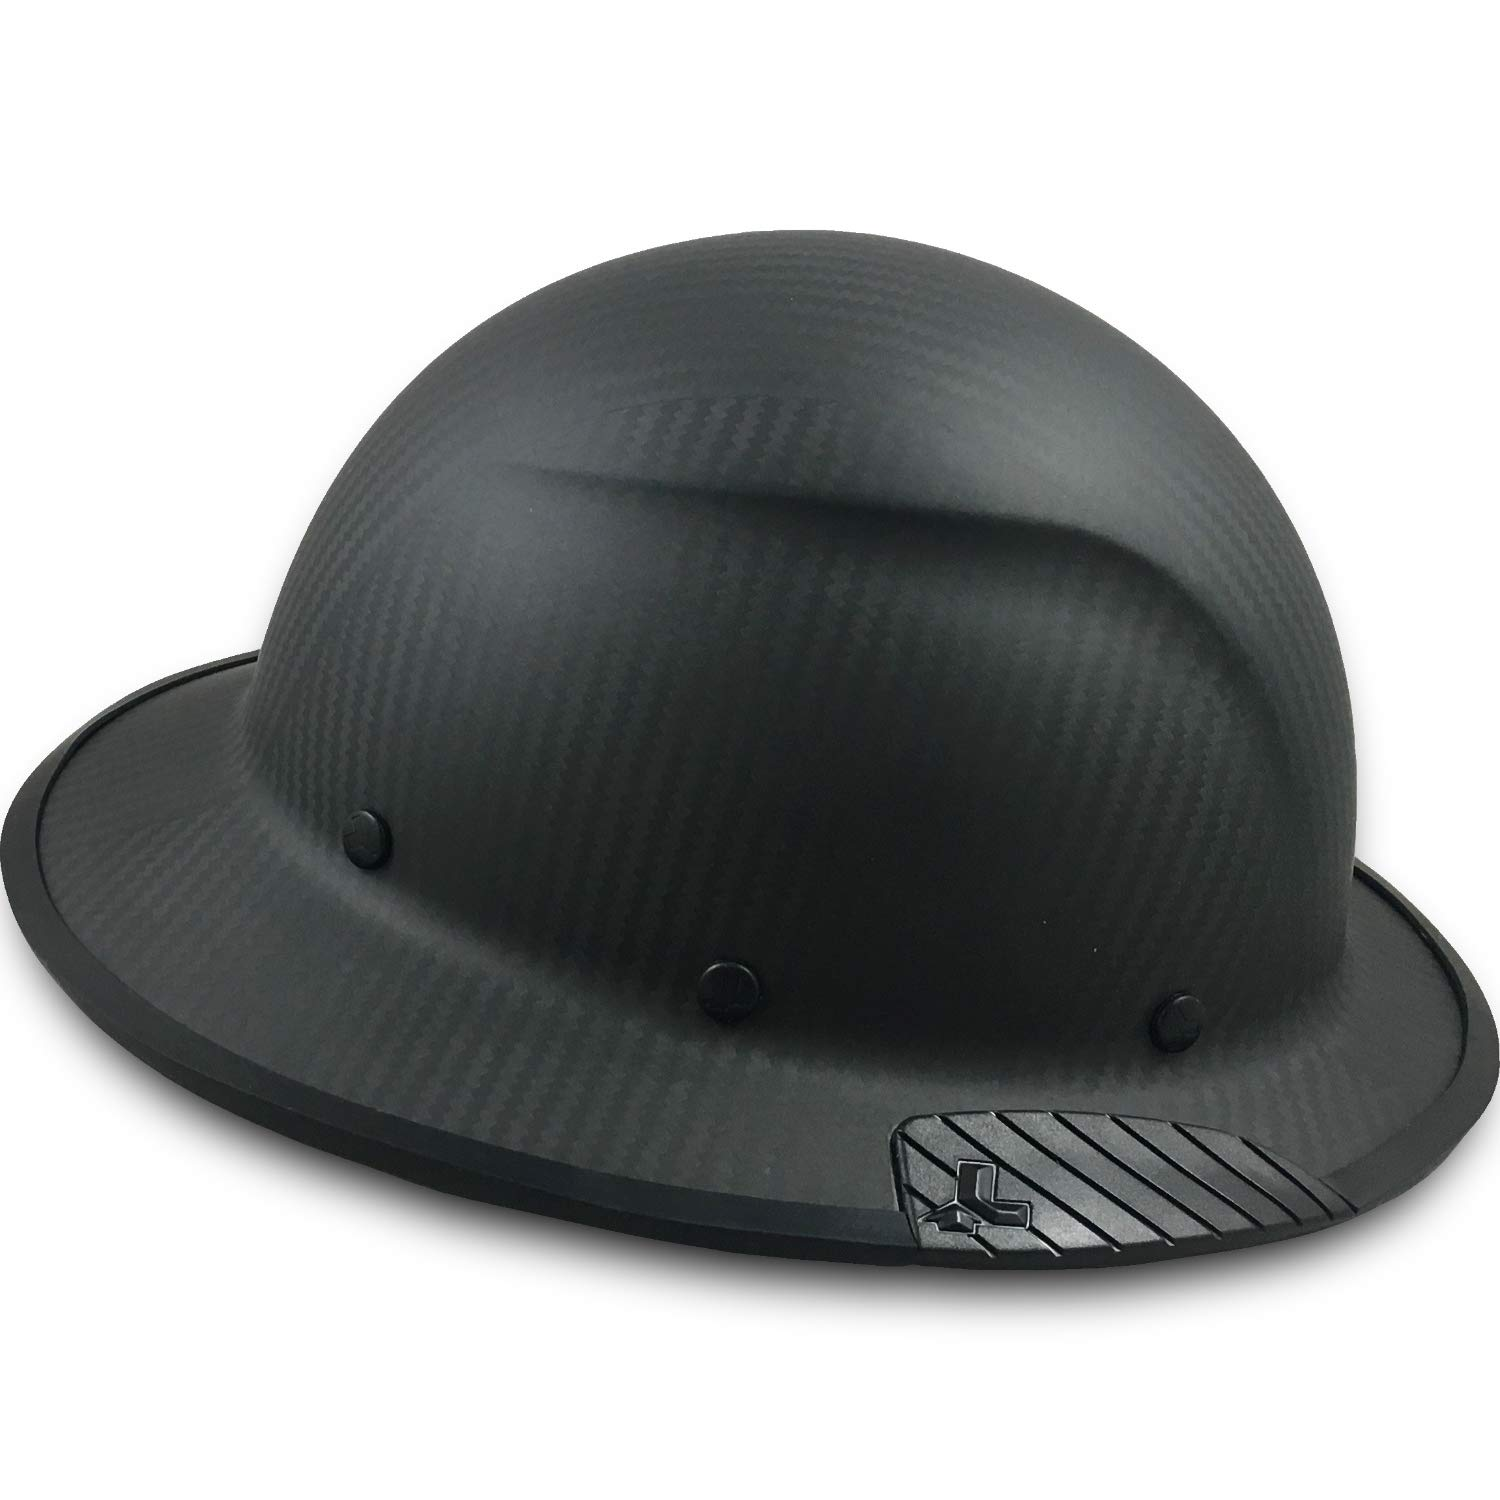 Texas America Safety Company Actual Carbon Fiber Material Hard Hat with Hard Hat Tote- Full Brim, Matte Black with Protective Edging by Texas America Safety Company (Image #3)